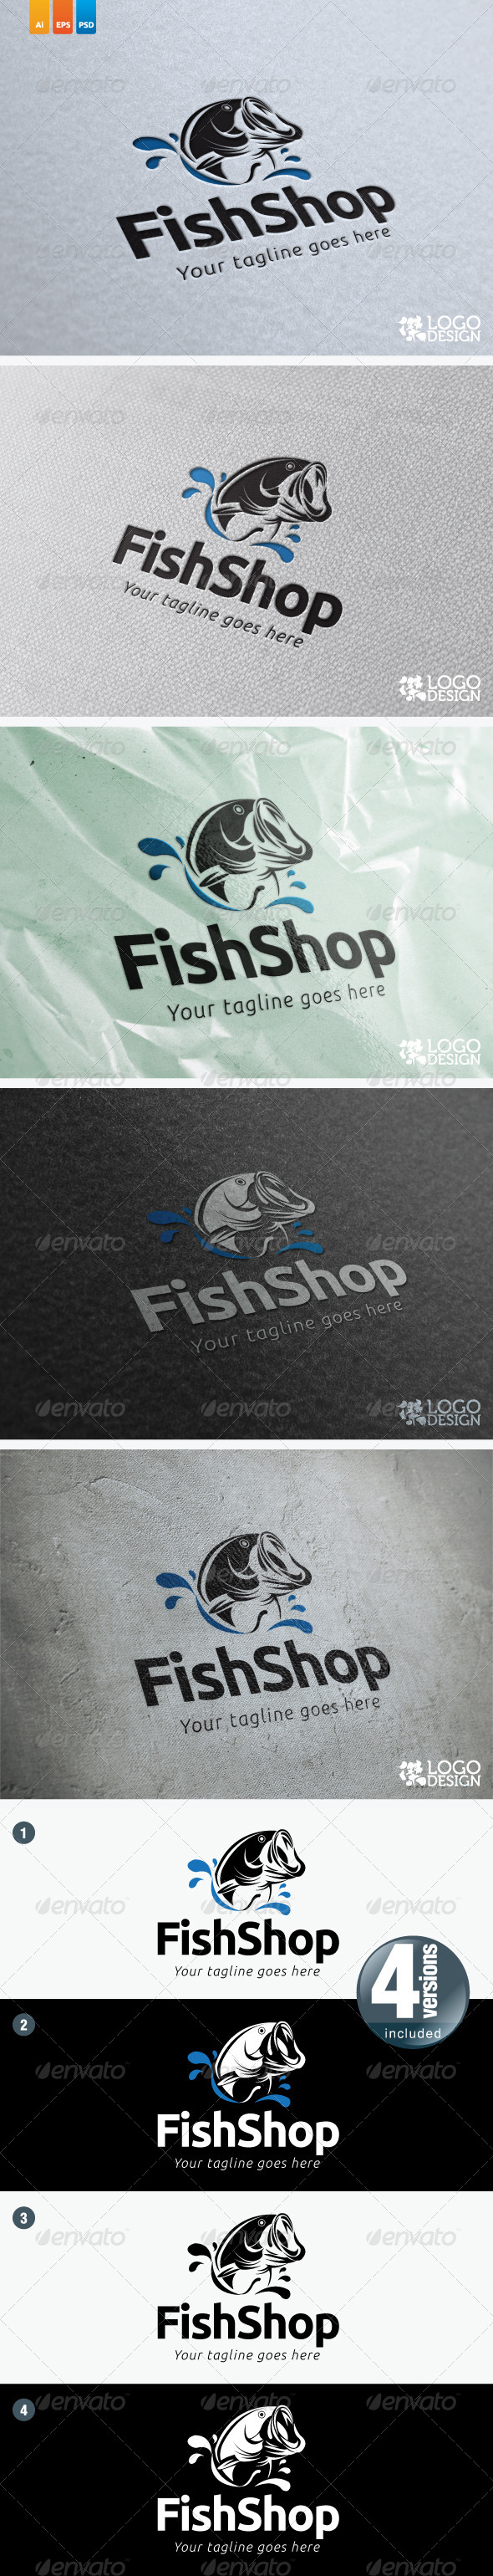 GraphicRiver Fish Shop 4162559